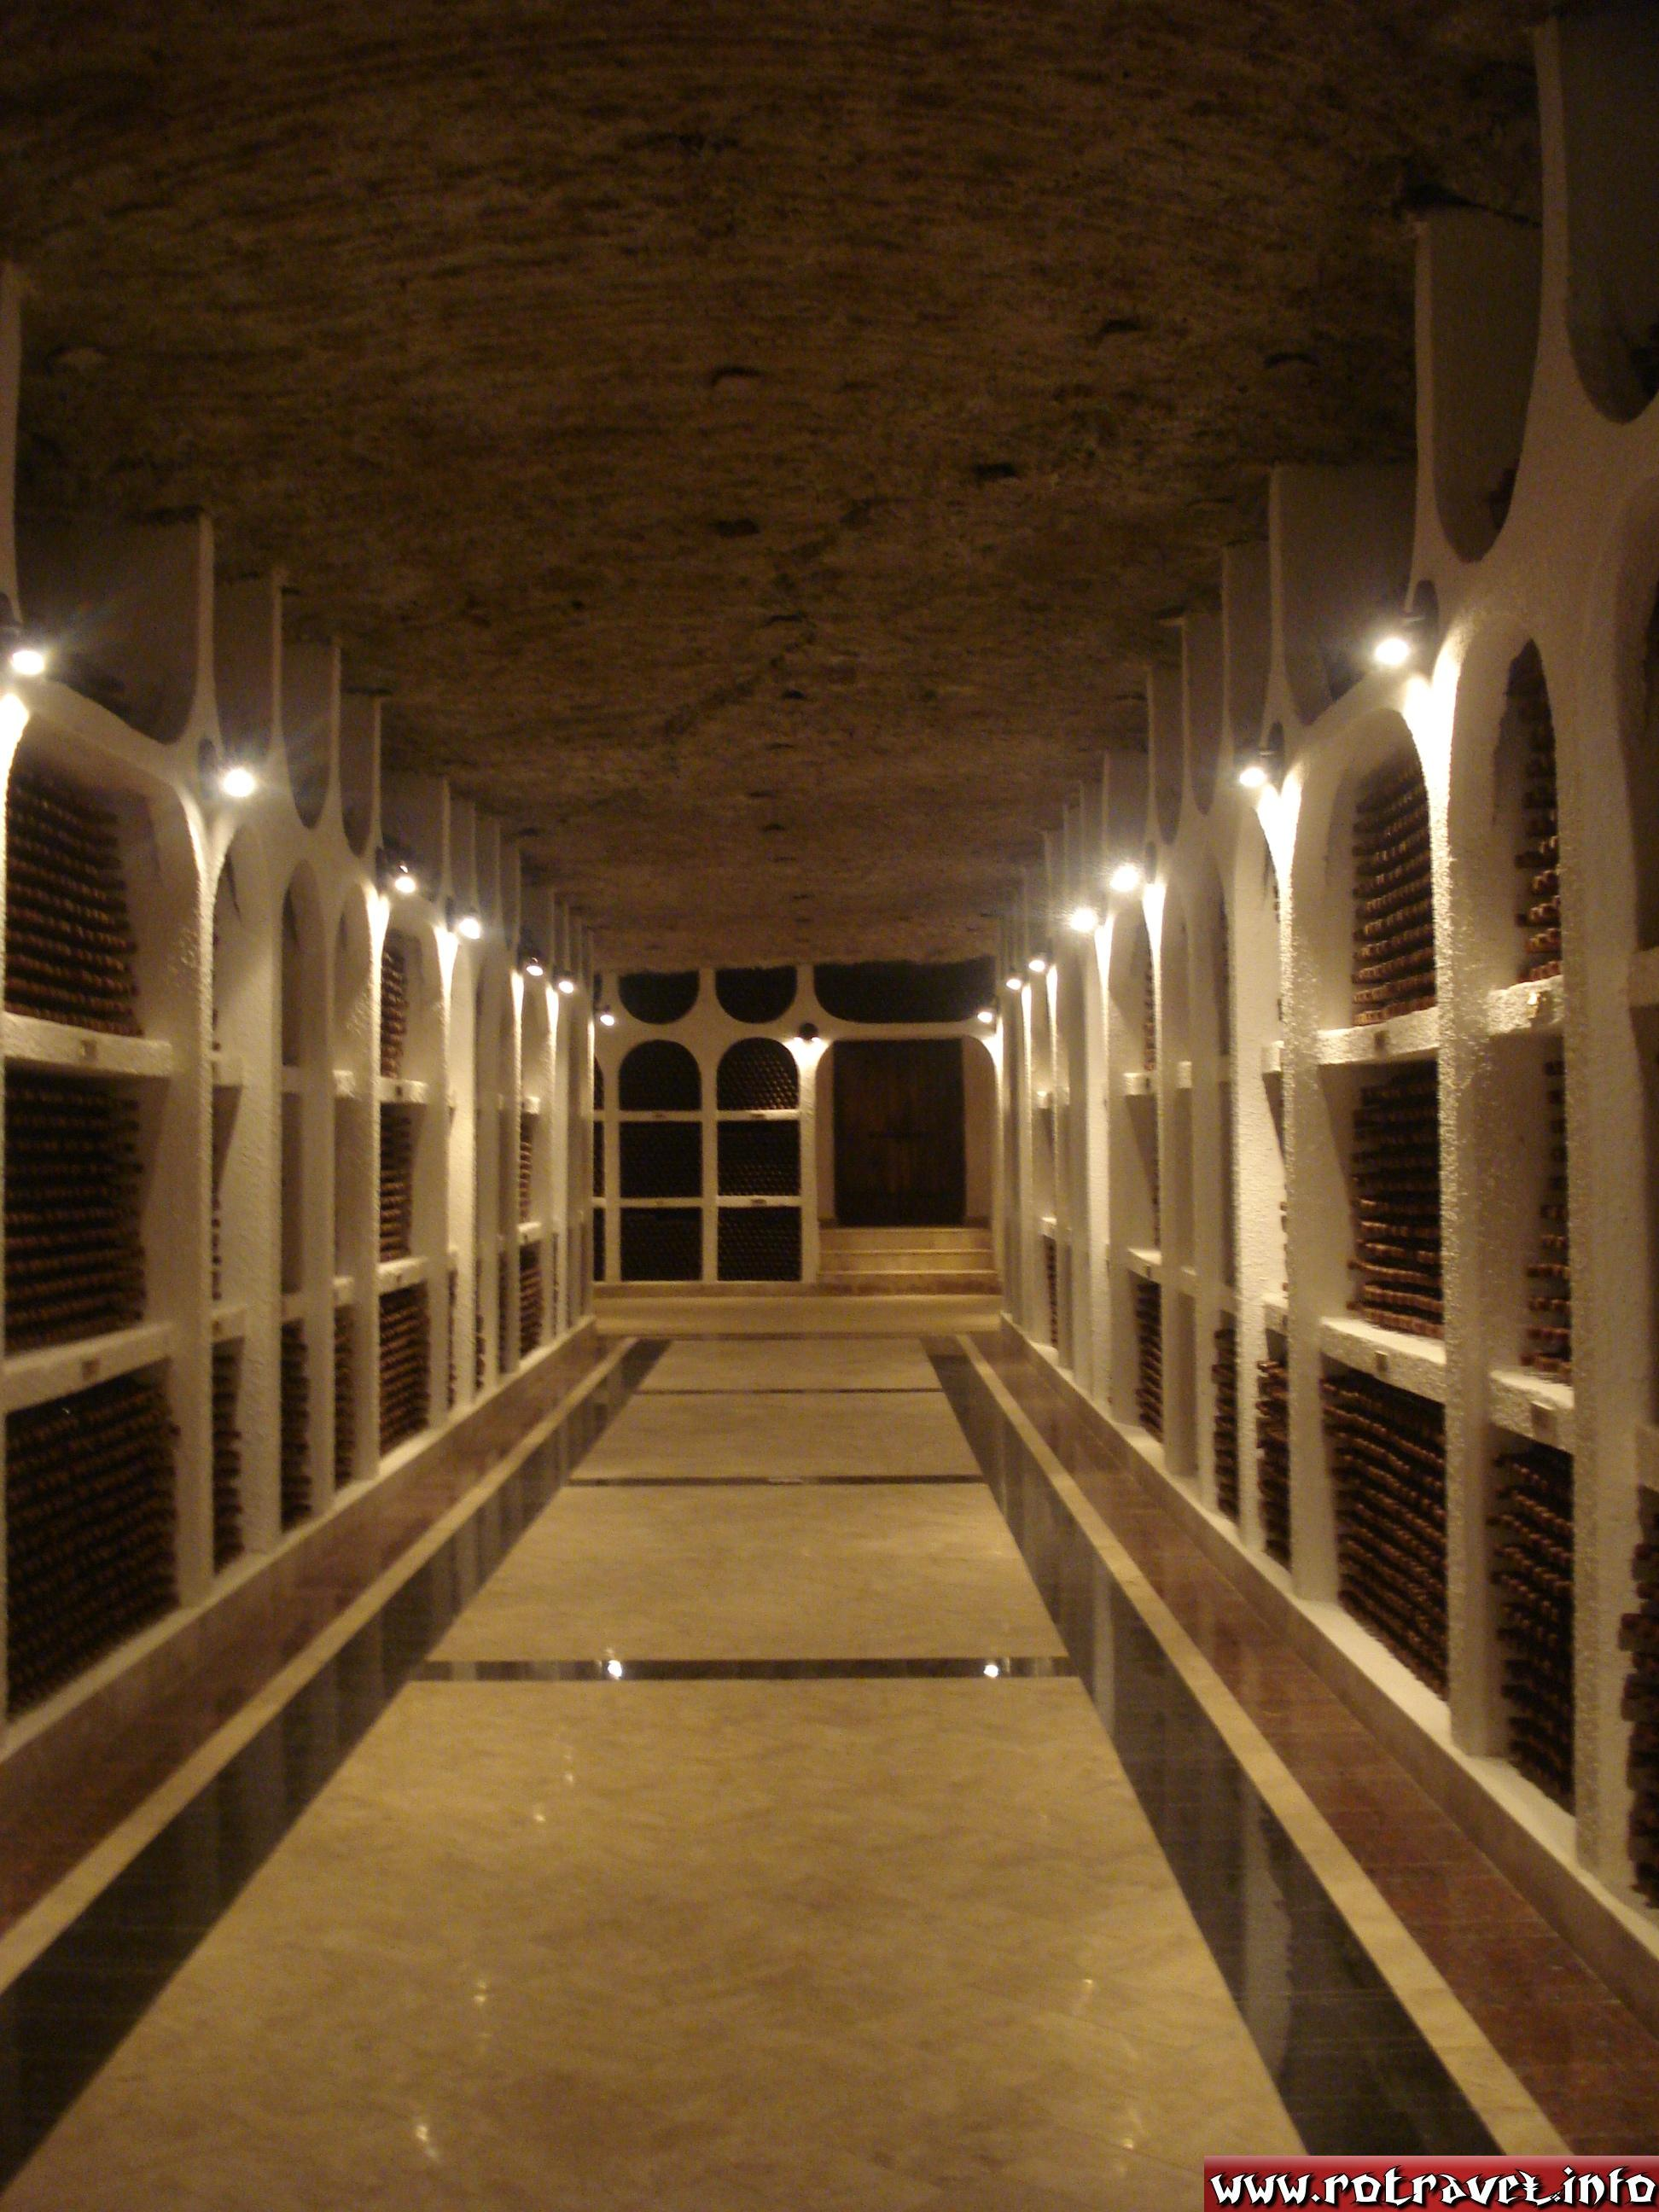 The cellar where is kept the wine collections.